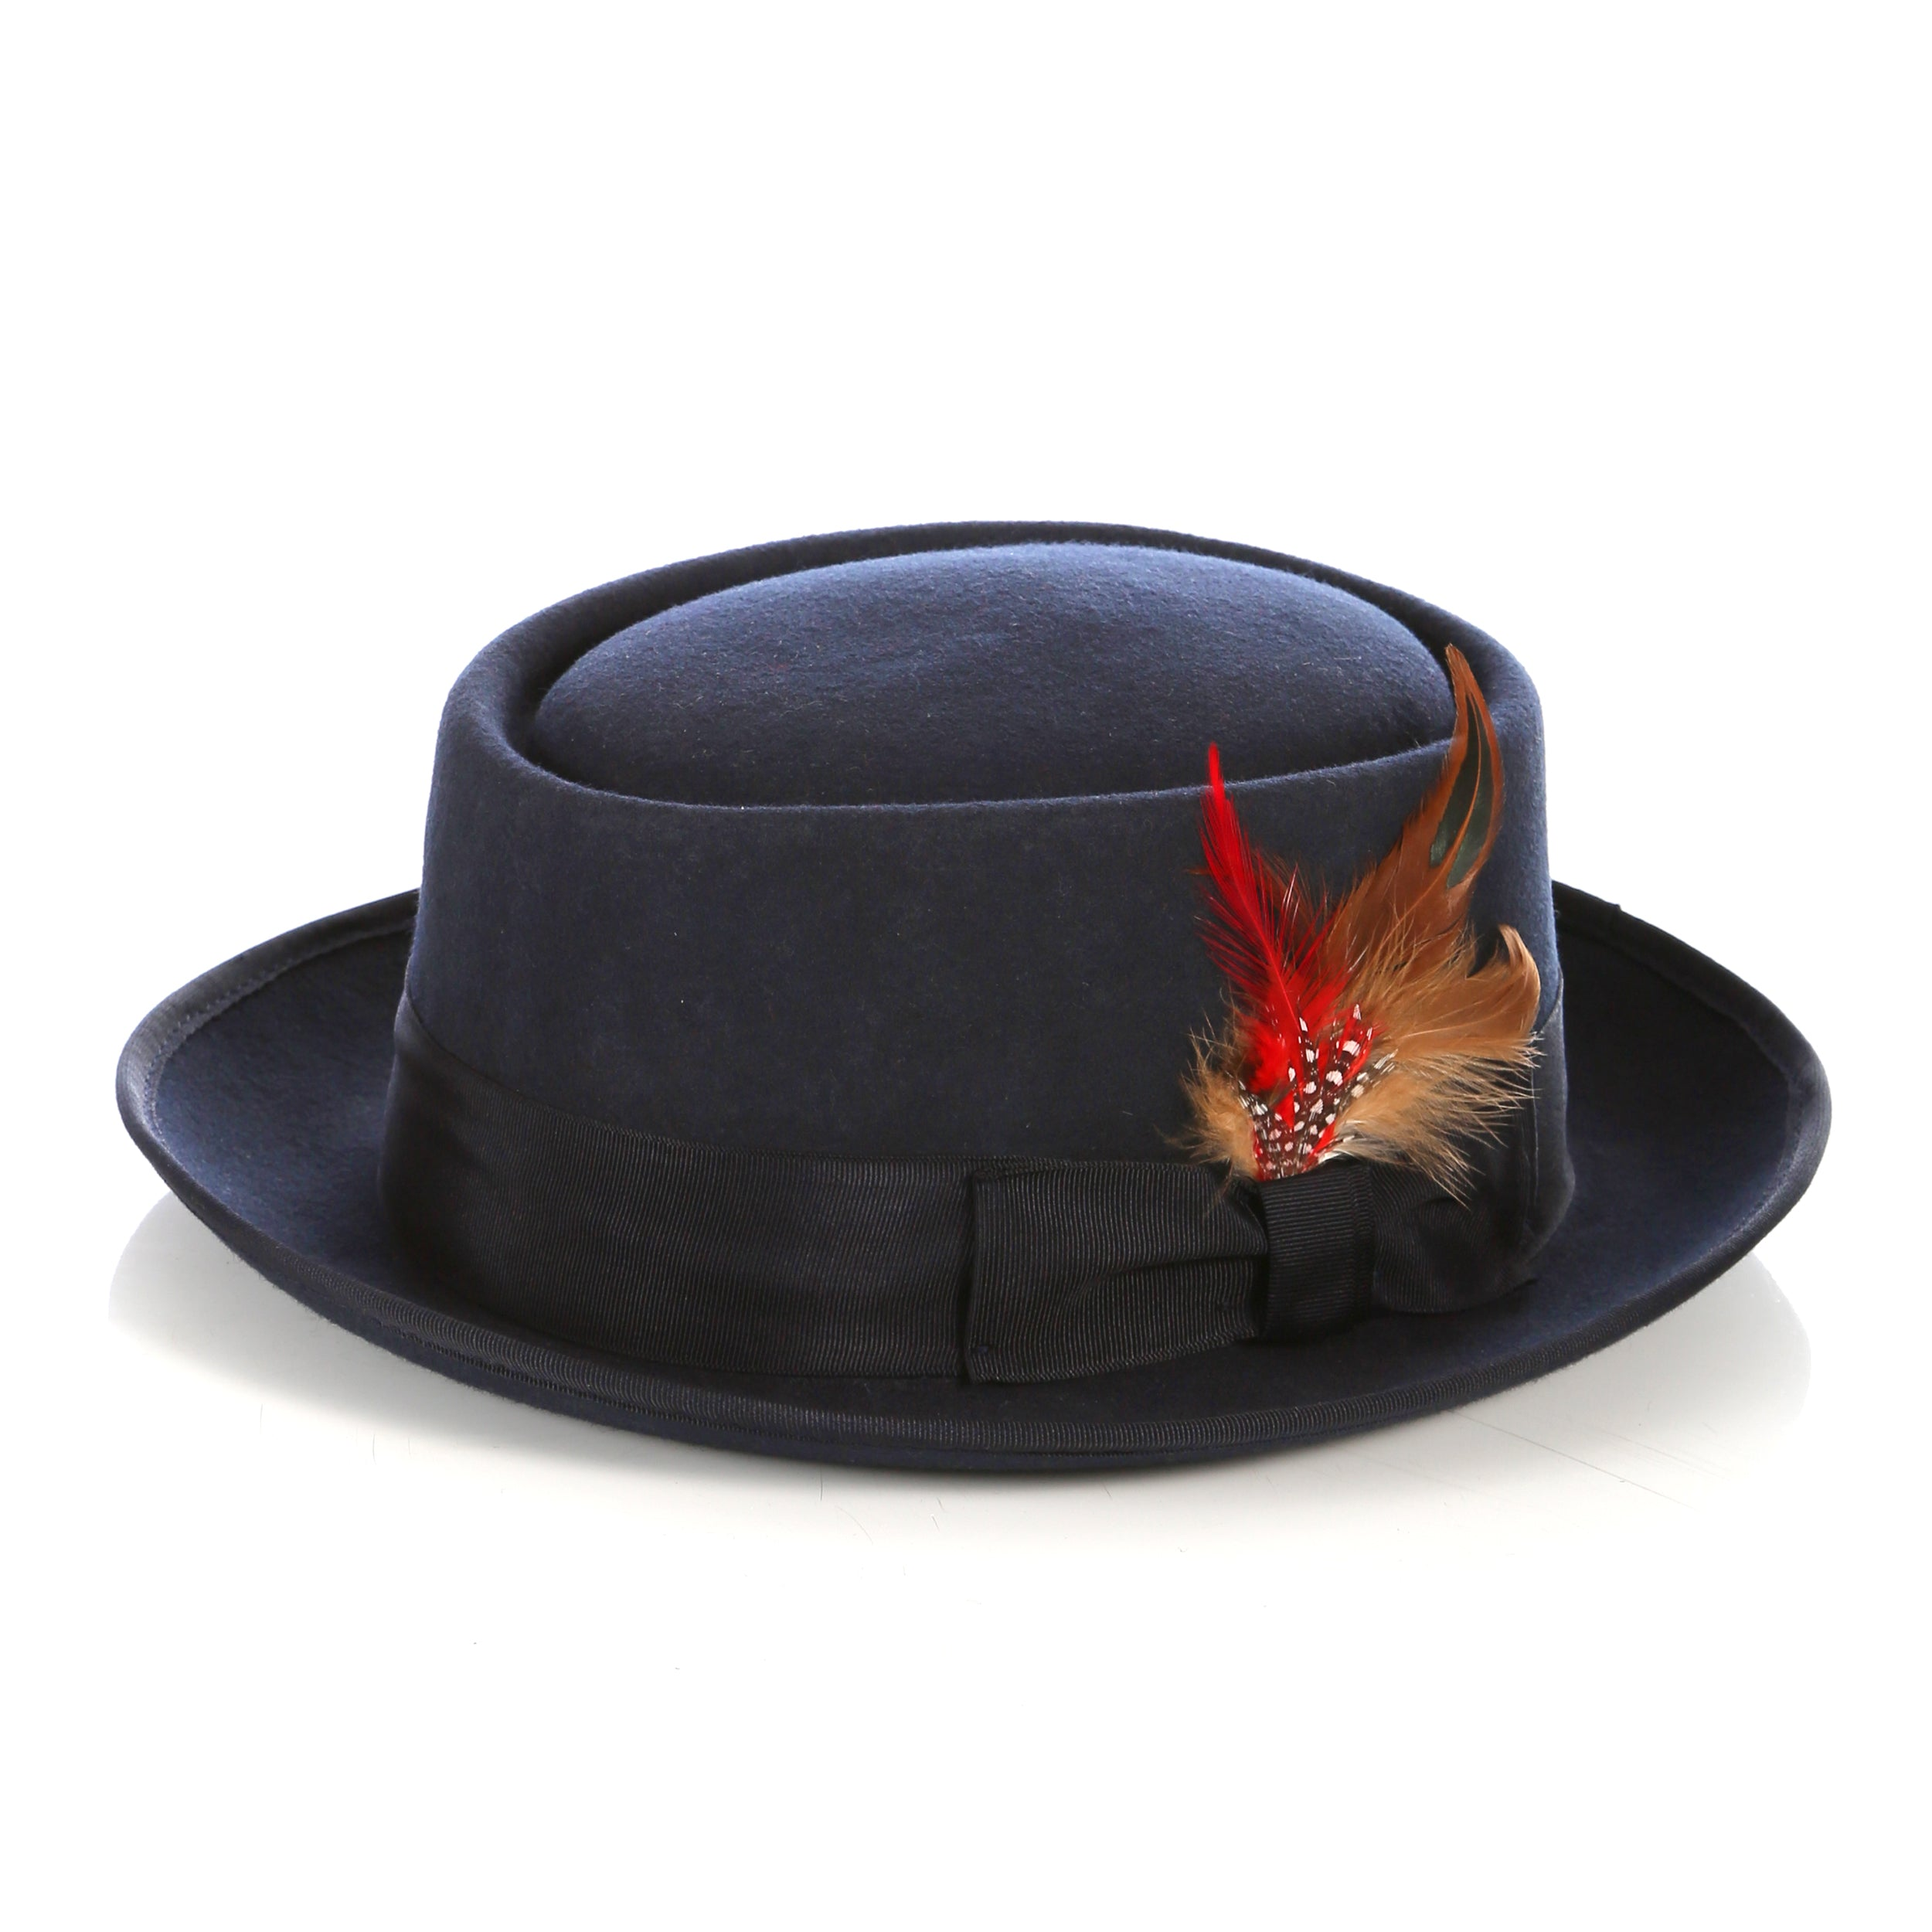 fb147e9a165a2 Navy Pork Pie Hat - 100% Wool - Ferrecci